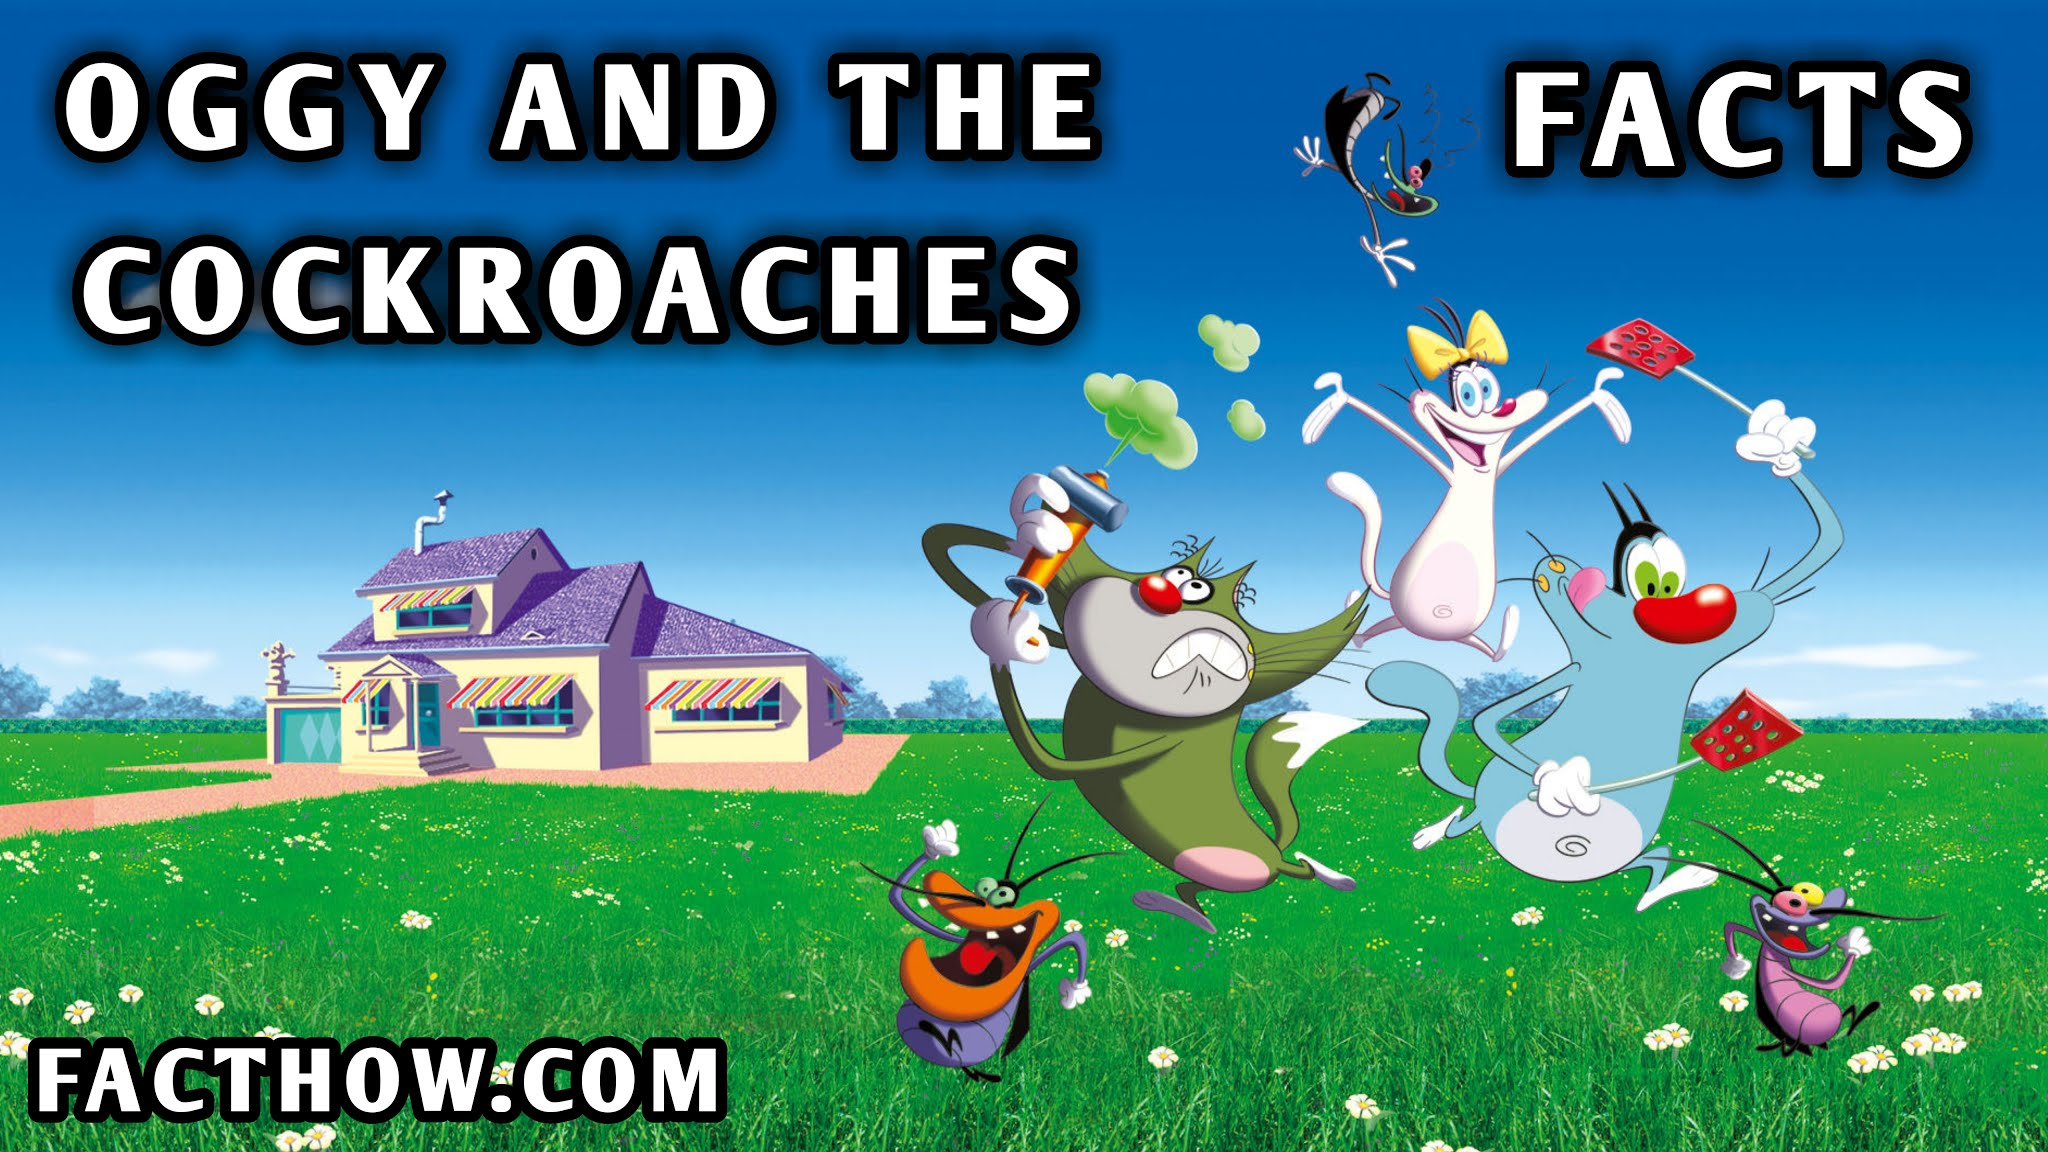 oggy-and-the-cockroaches-17-facts-hindi-oggy-cartoon-facts-rochak-tathya-facthow-fact-how-interesting-amazing-facts-hindi-nickelodeon-2020